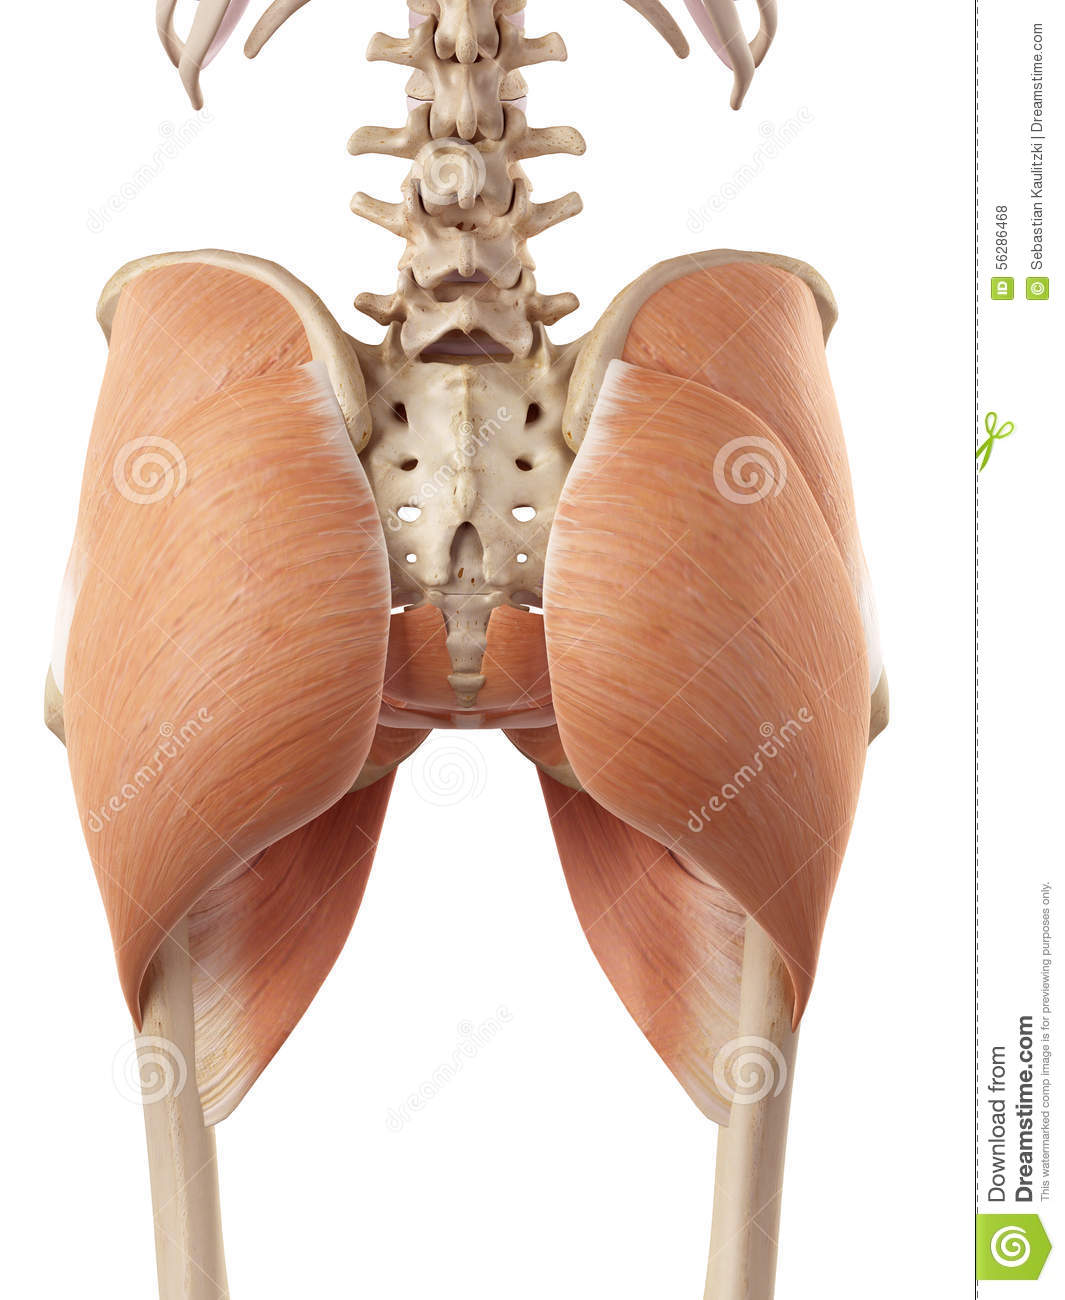 The Hip Muscles Stock Illustration Illustration Of Muscles 56286468